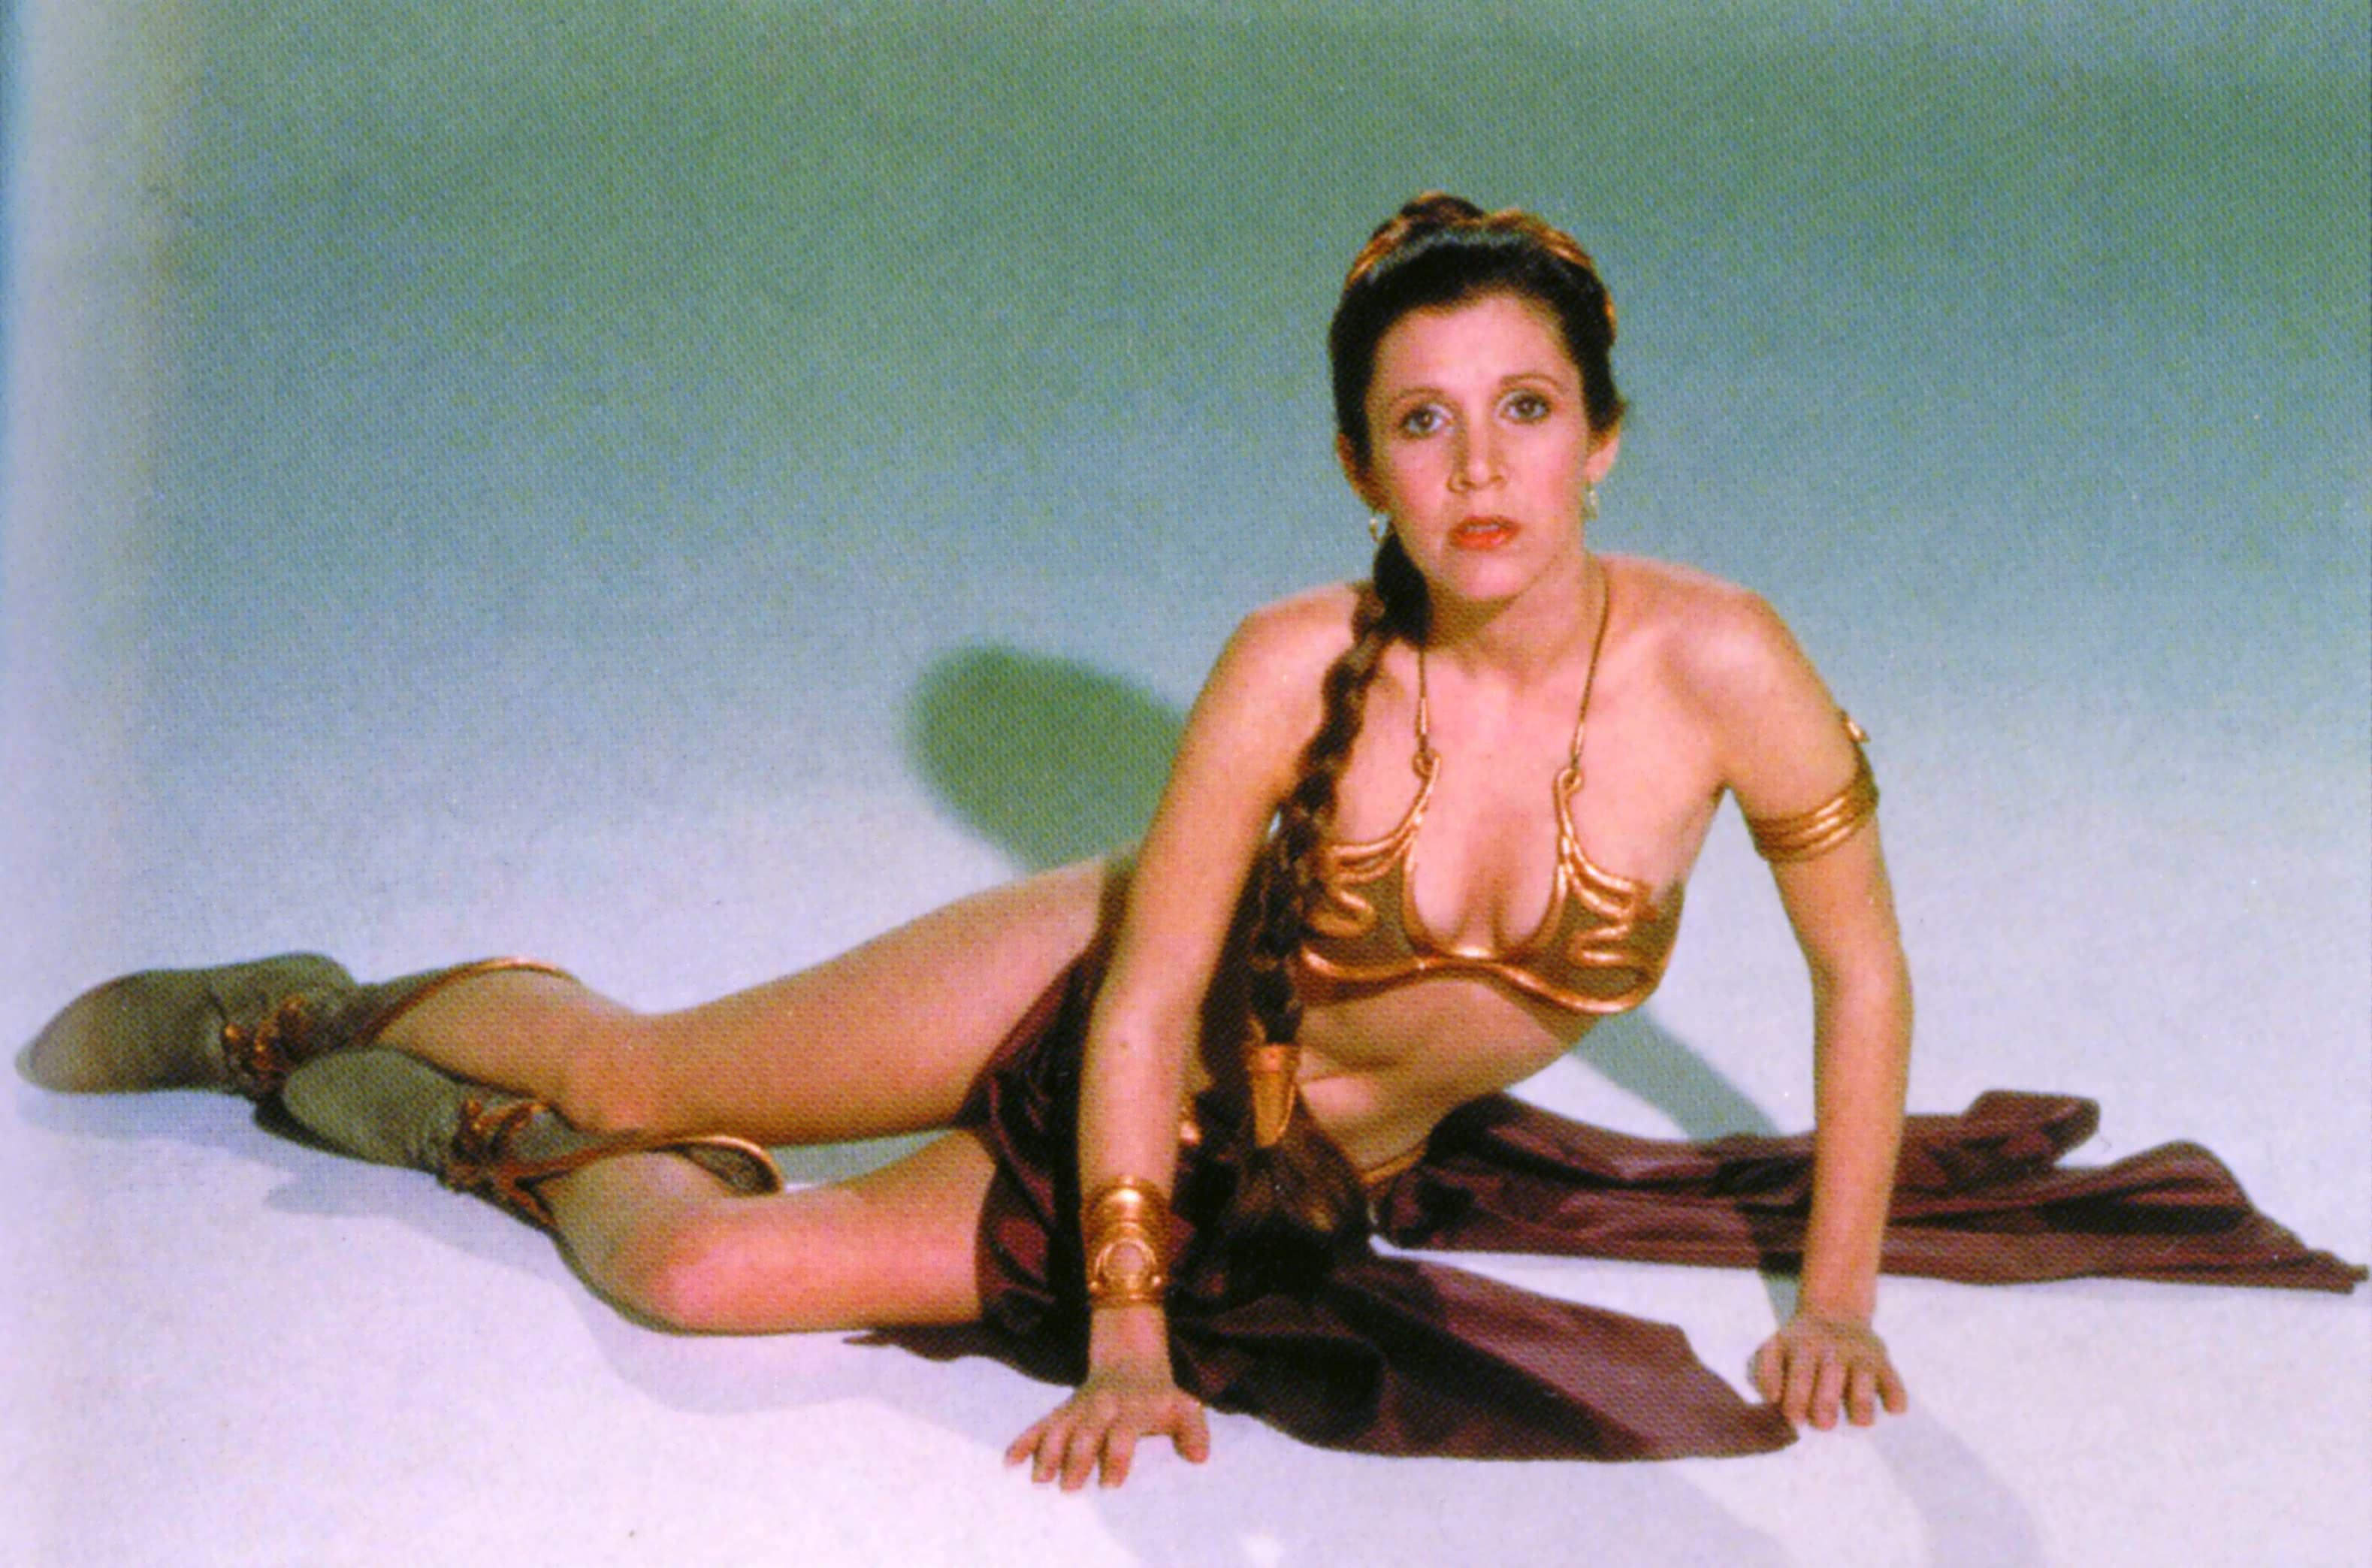 Carrie fisher tease 6